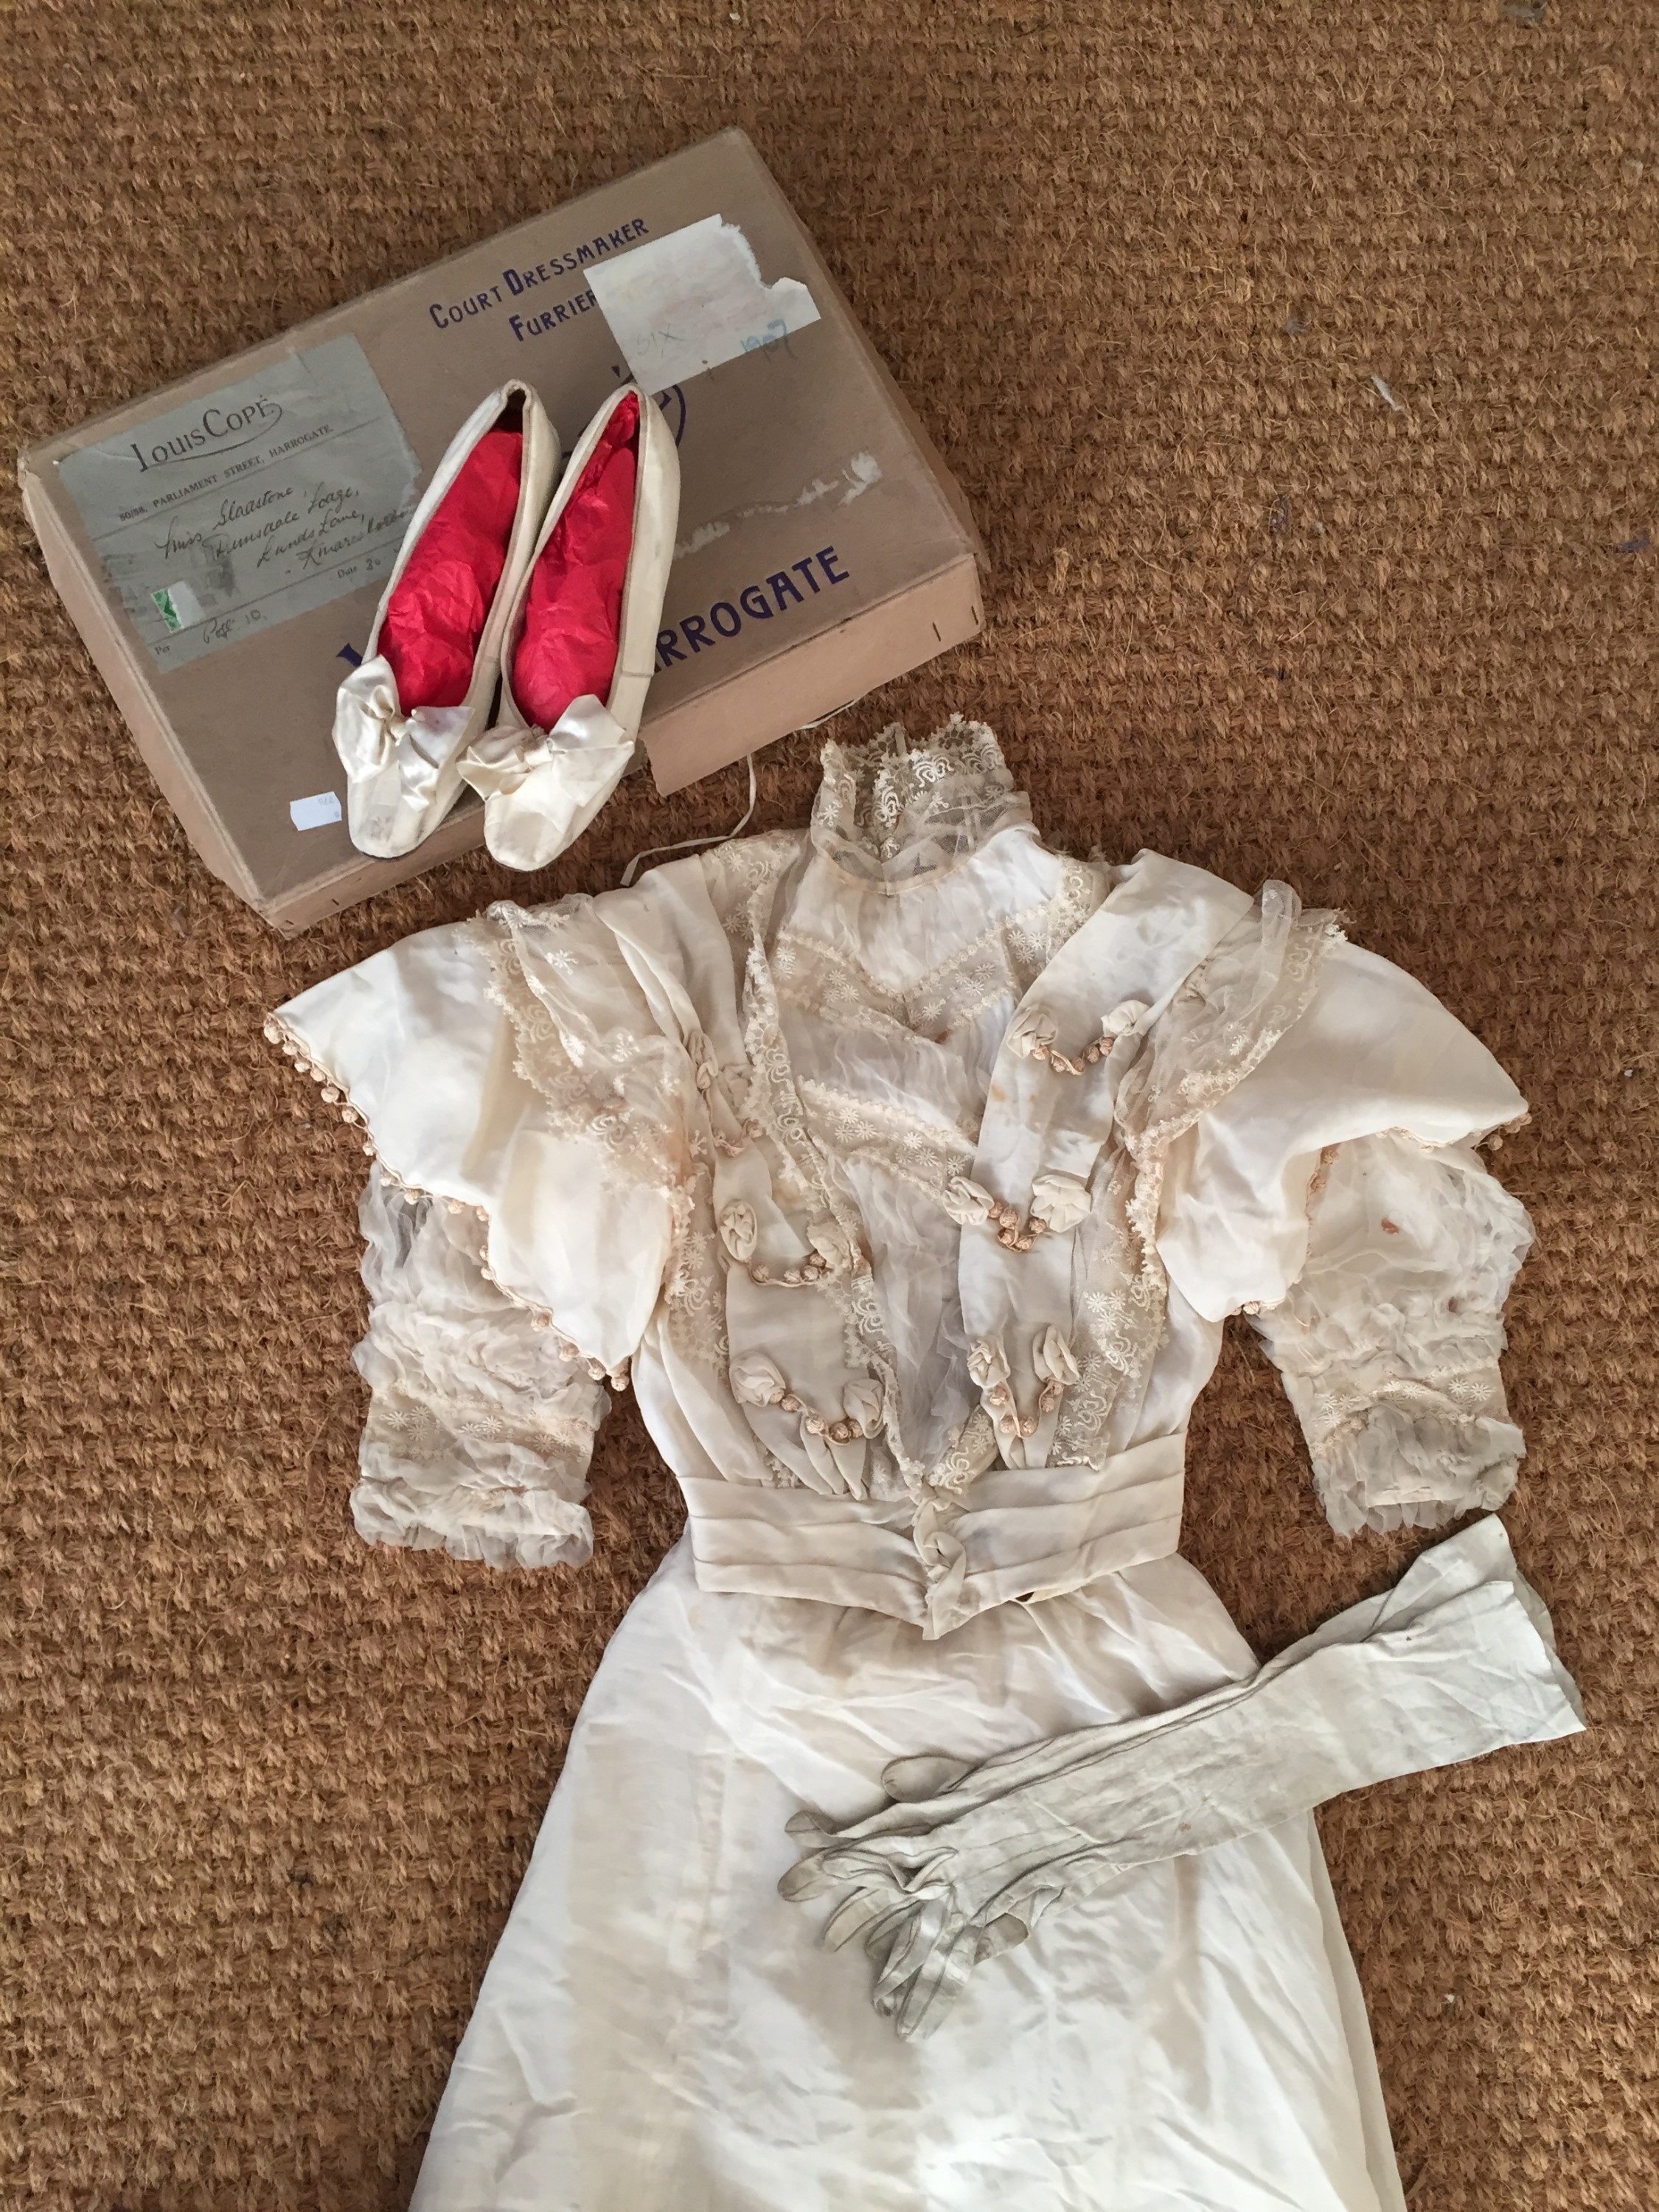 Lot 42 - An Edwardian watered silk wedding ensemble by costumier J.K Barrow of Barrow-in-Furness, the two-